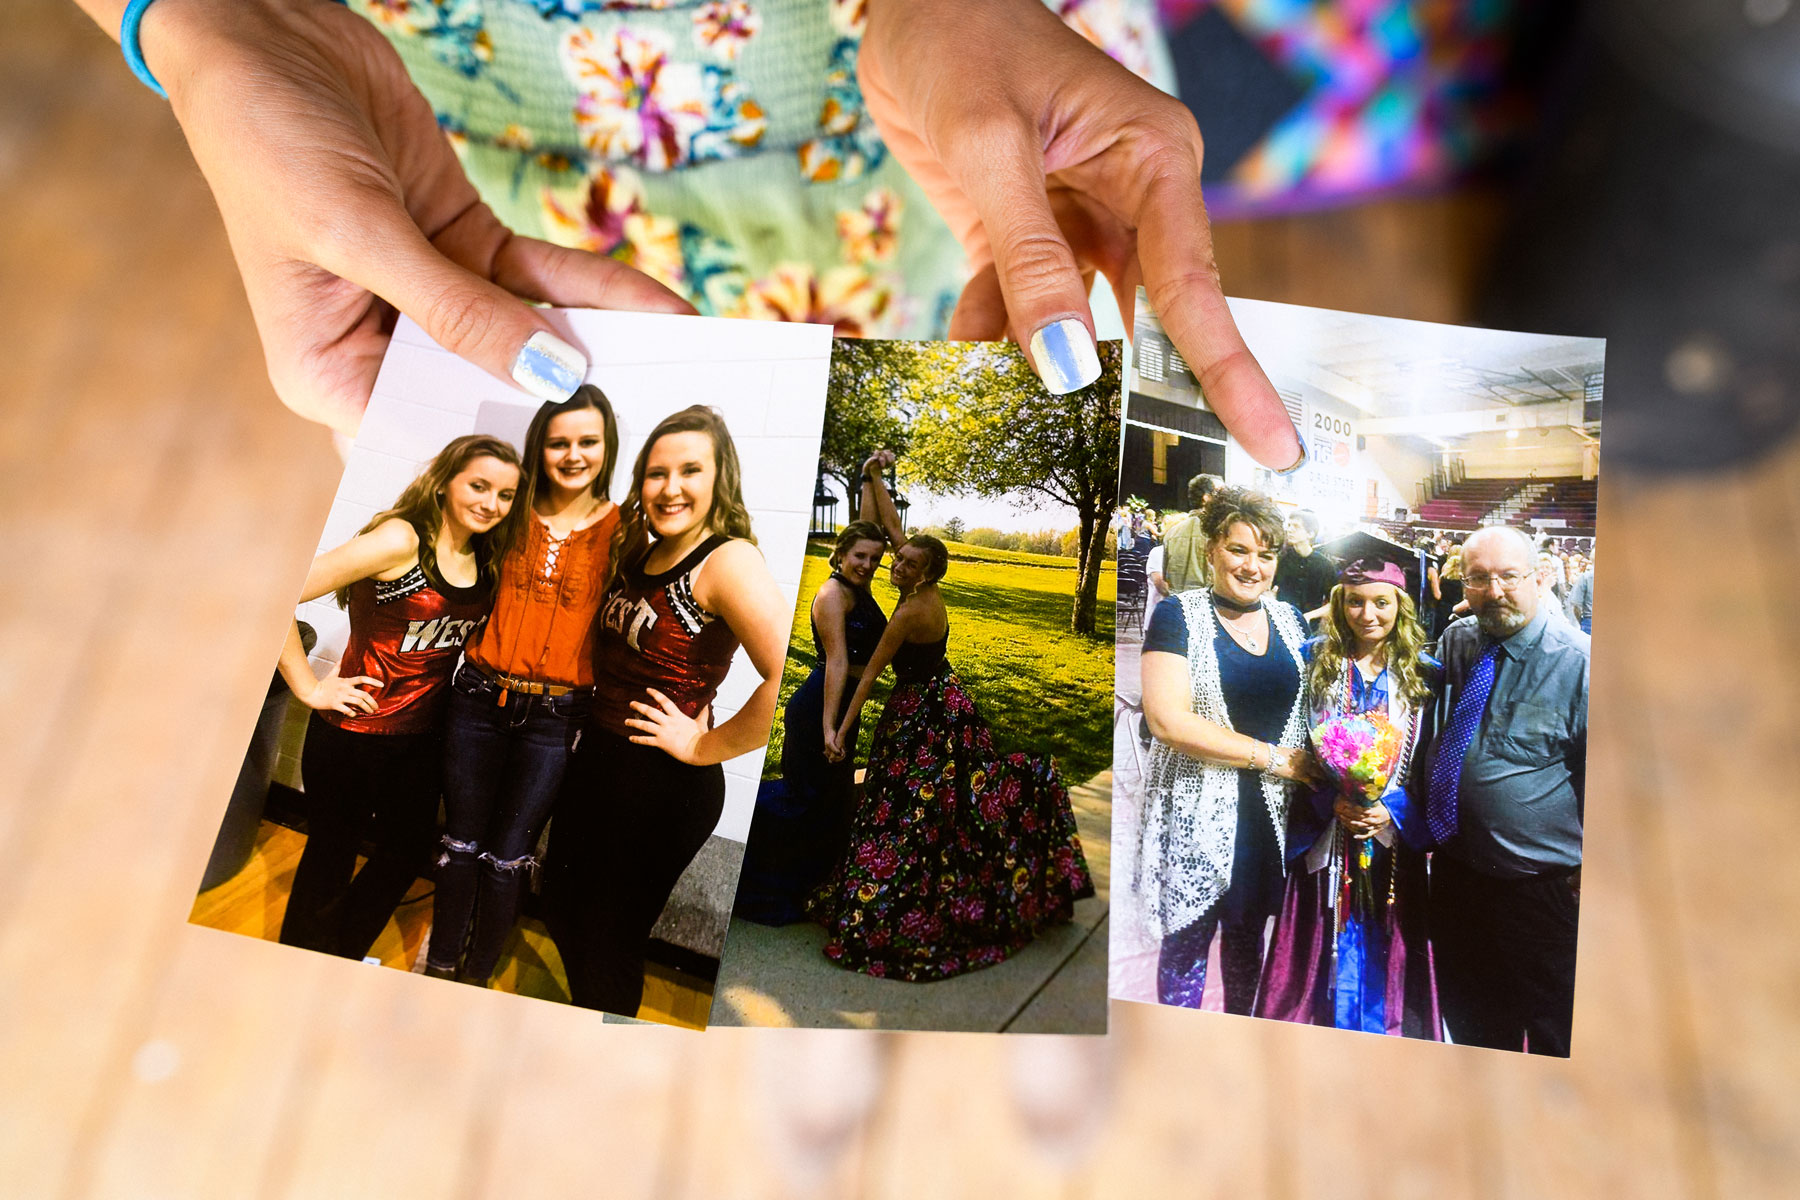 Breanna shows three photos of her and her friends and family during her time at high school.